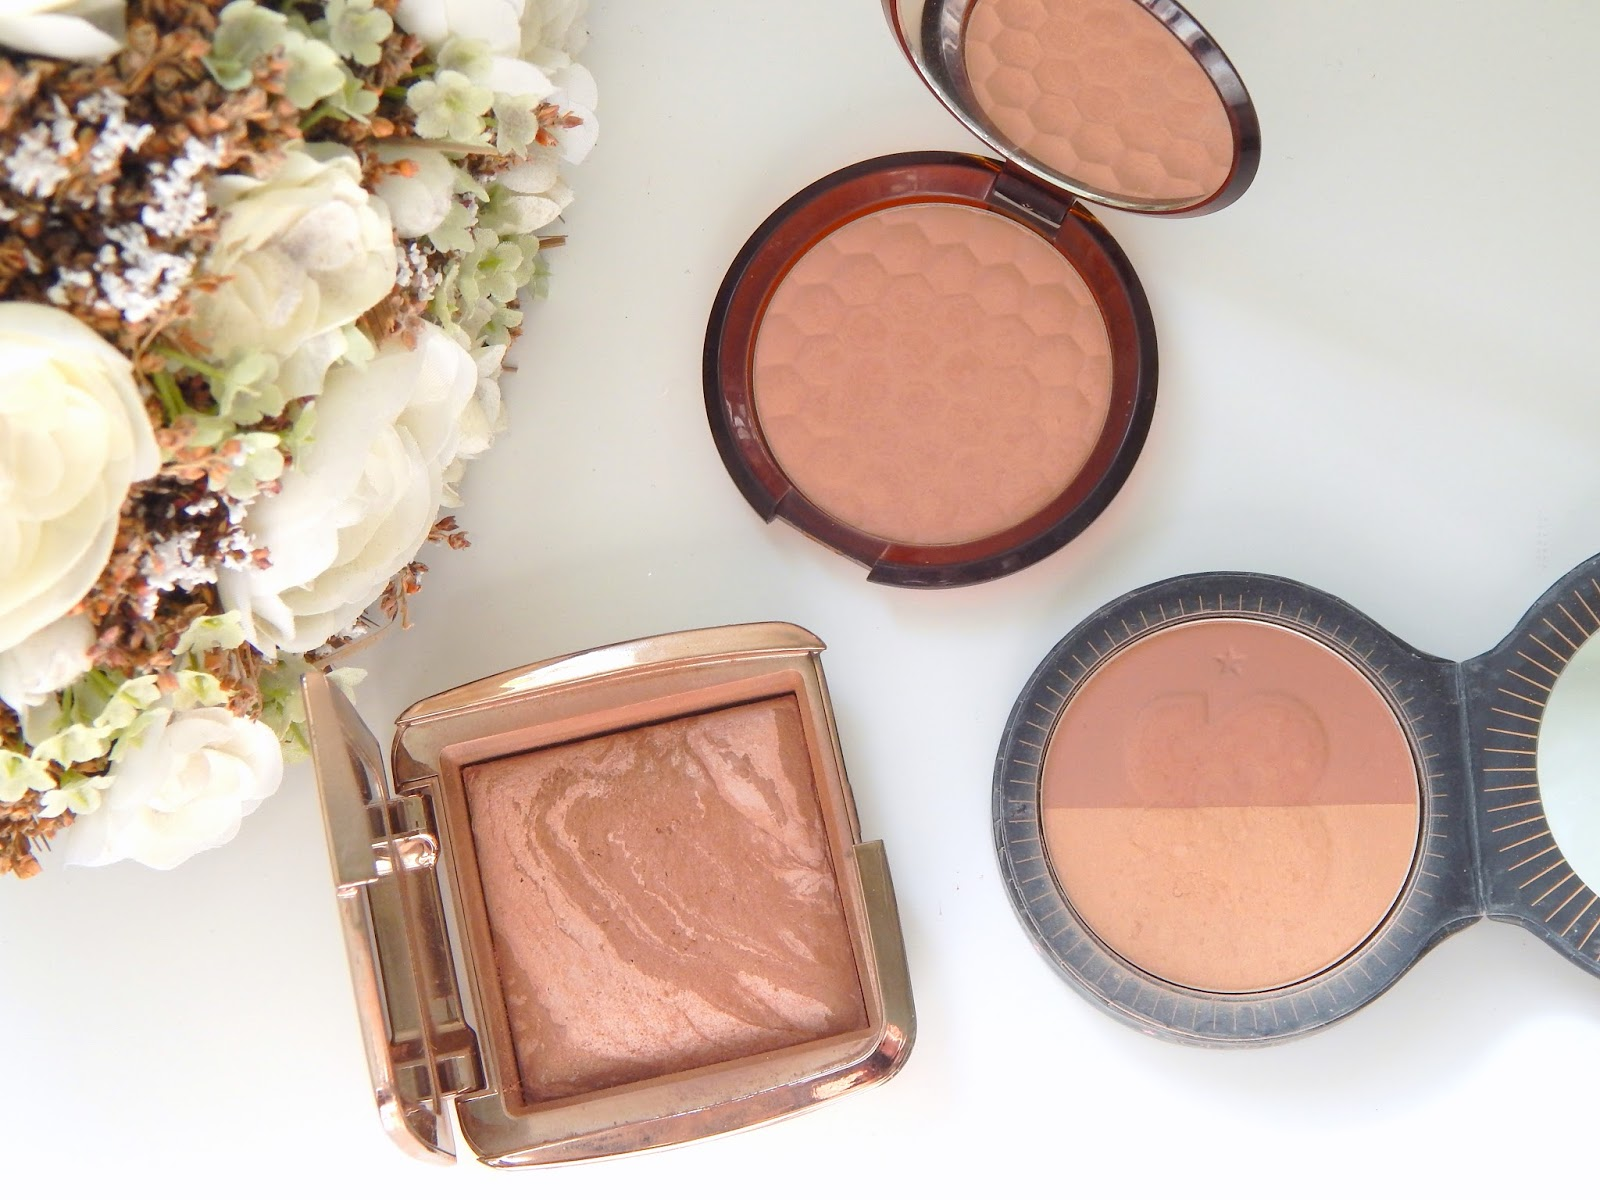 Bronzers for Pale Skin -The Body Shop, Hourglass and Soap and Glory